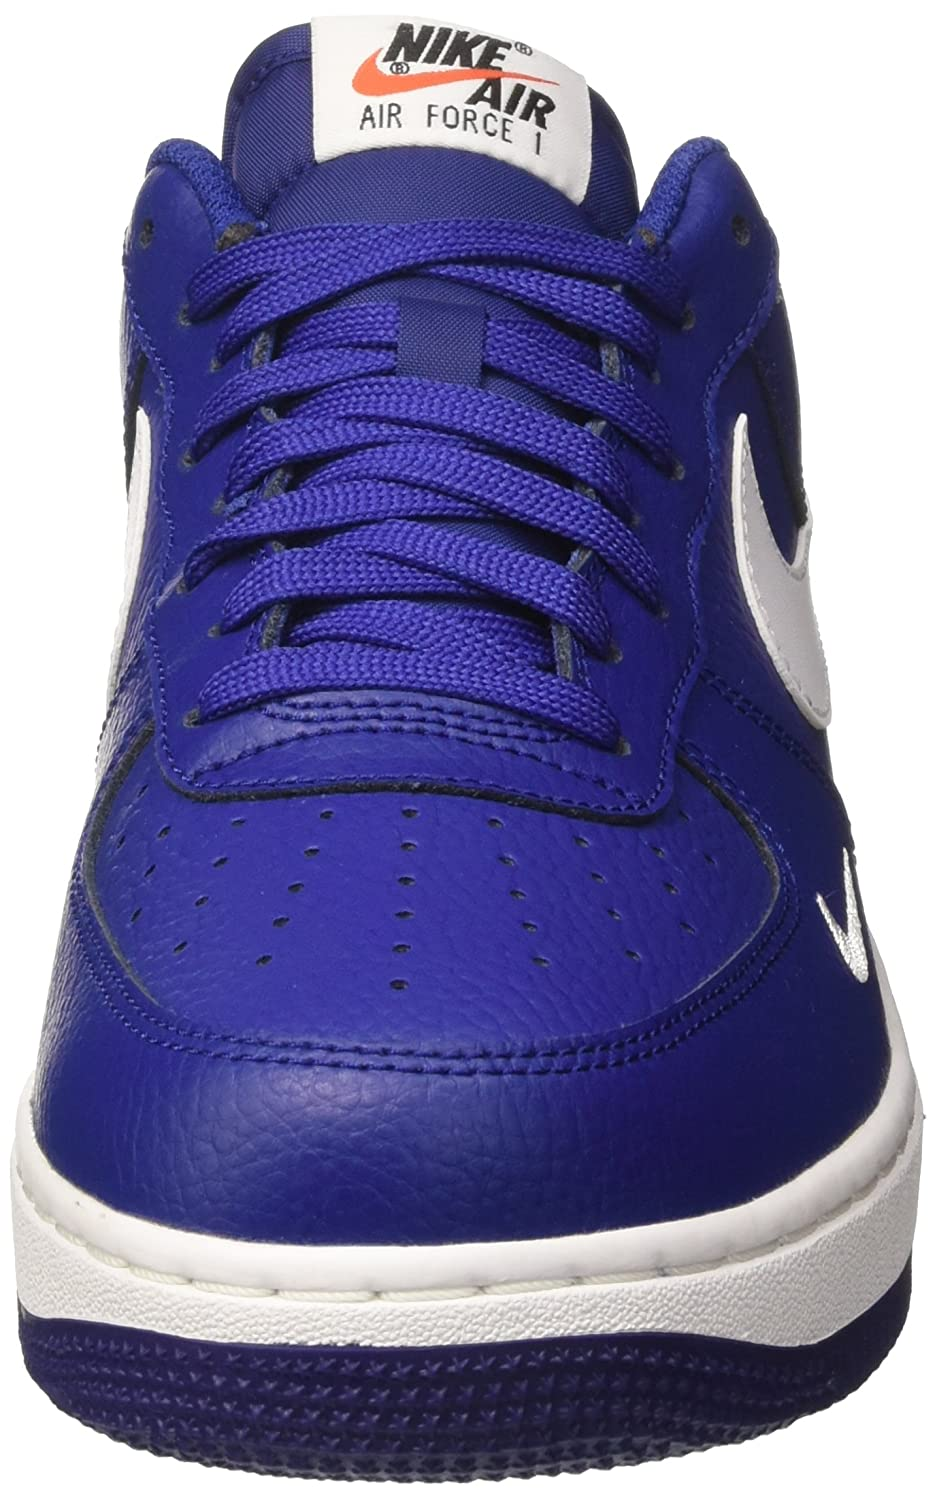 Nike Air Force 1 Tema De La Boda Azul Y Blanco Real Baja 3IbFIfb